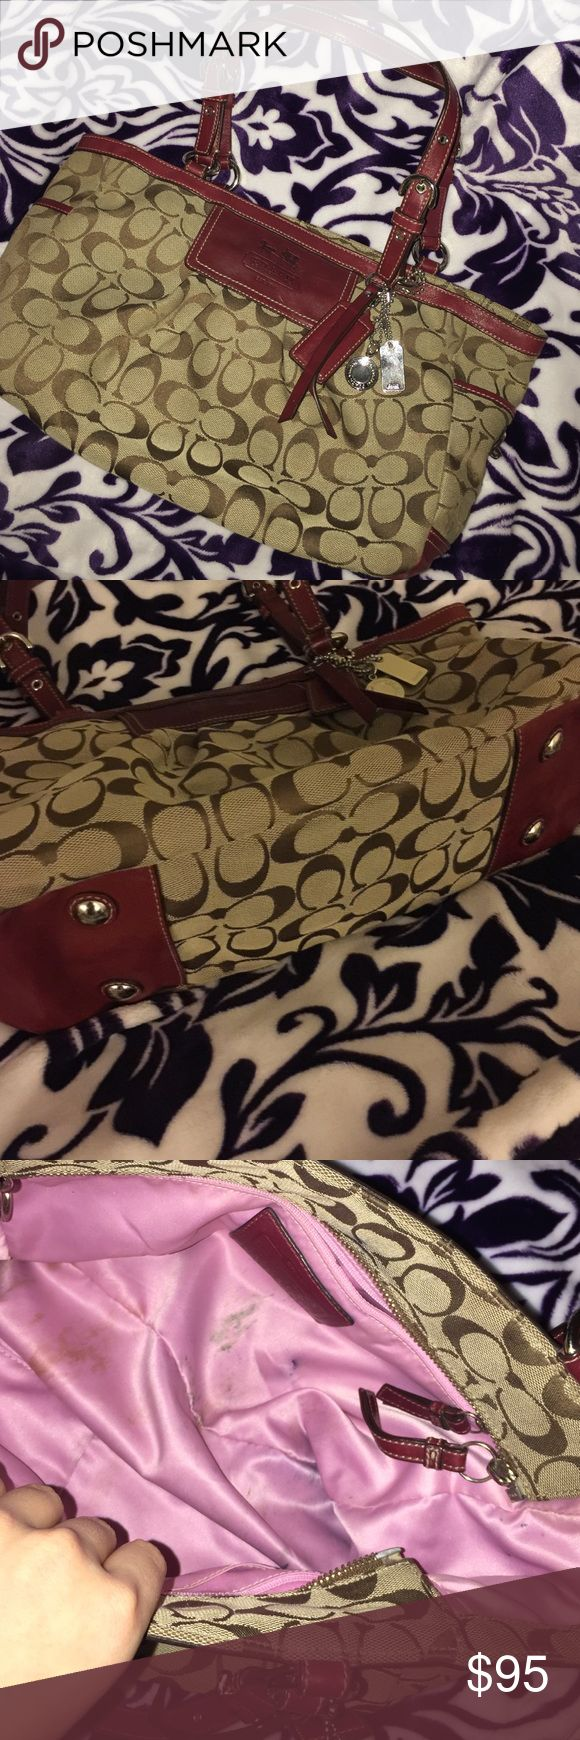 Coach Purse I'm selling a well-loved purse...meaning two pens melted while in a hot car and left their mark (no pun intended) on the interior of the bag. The outside is in great condition though! Make an offer! Coach Bags Shoulder Bags